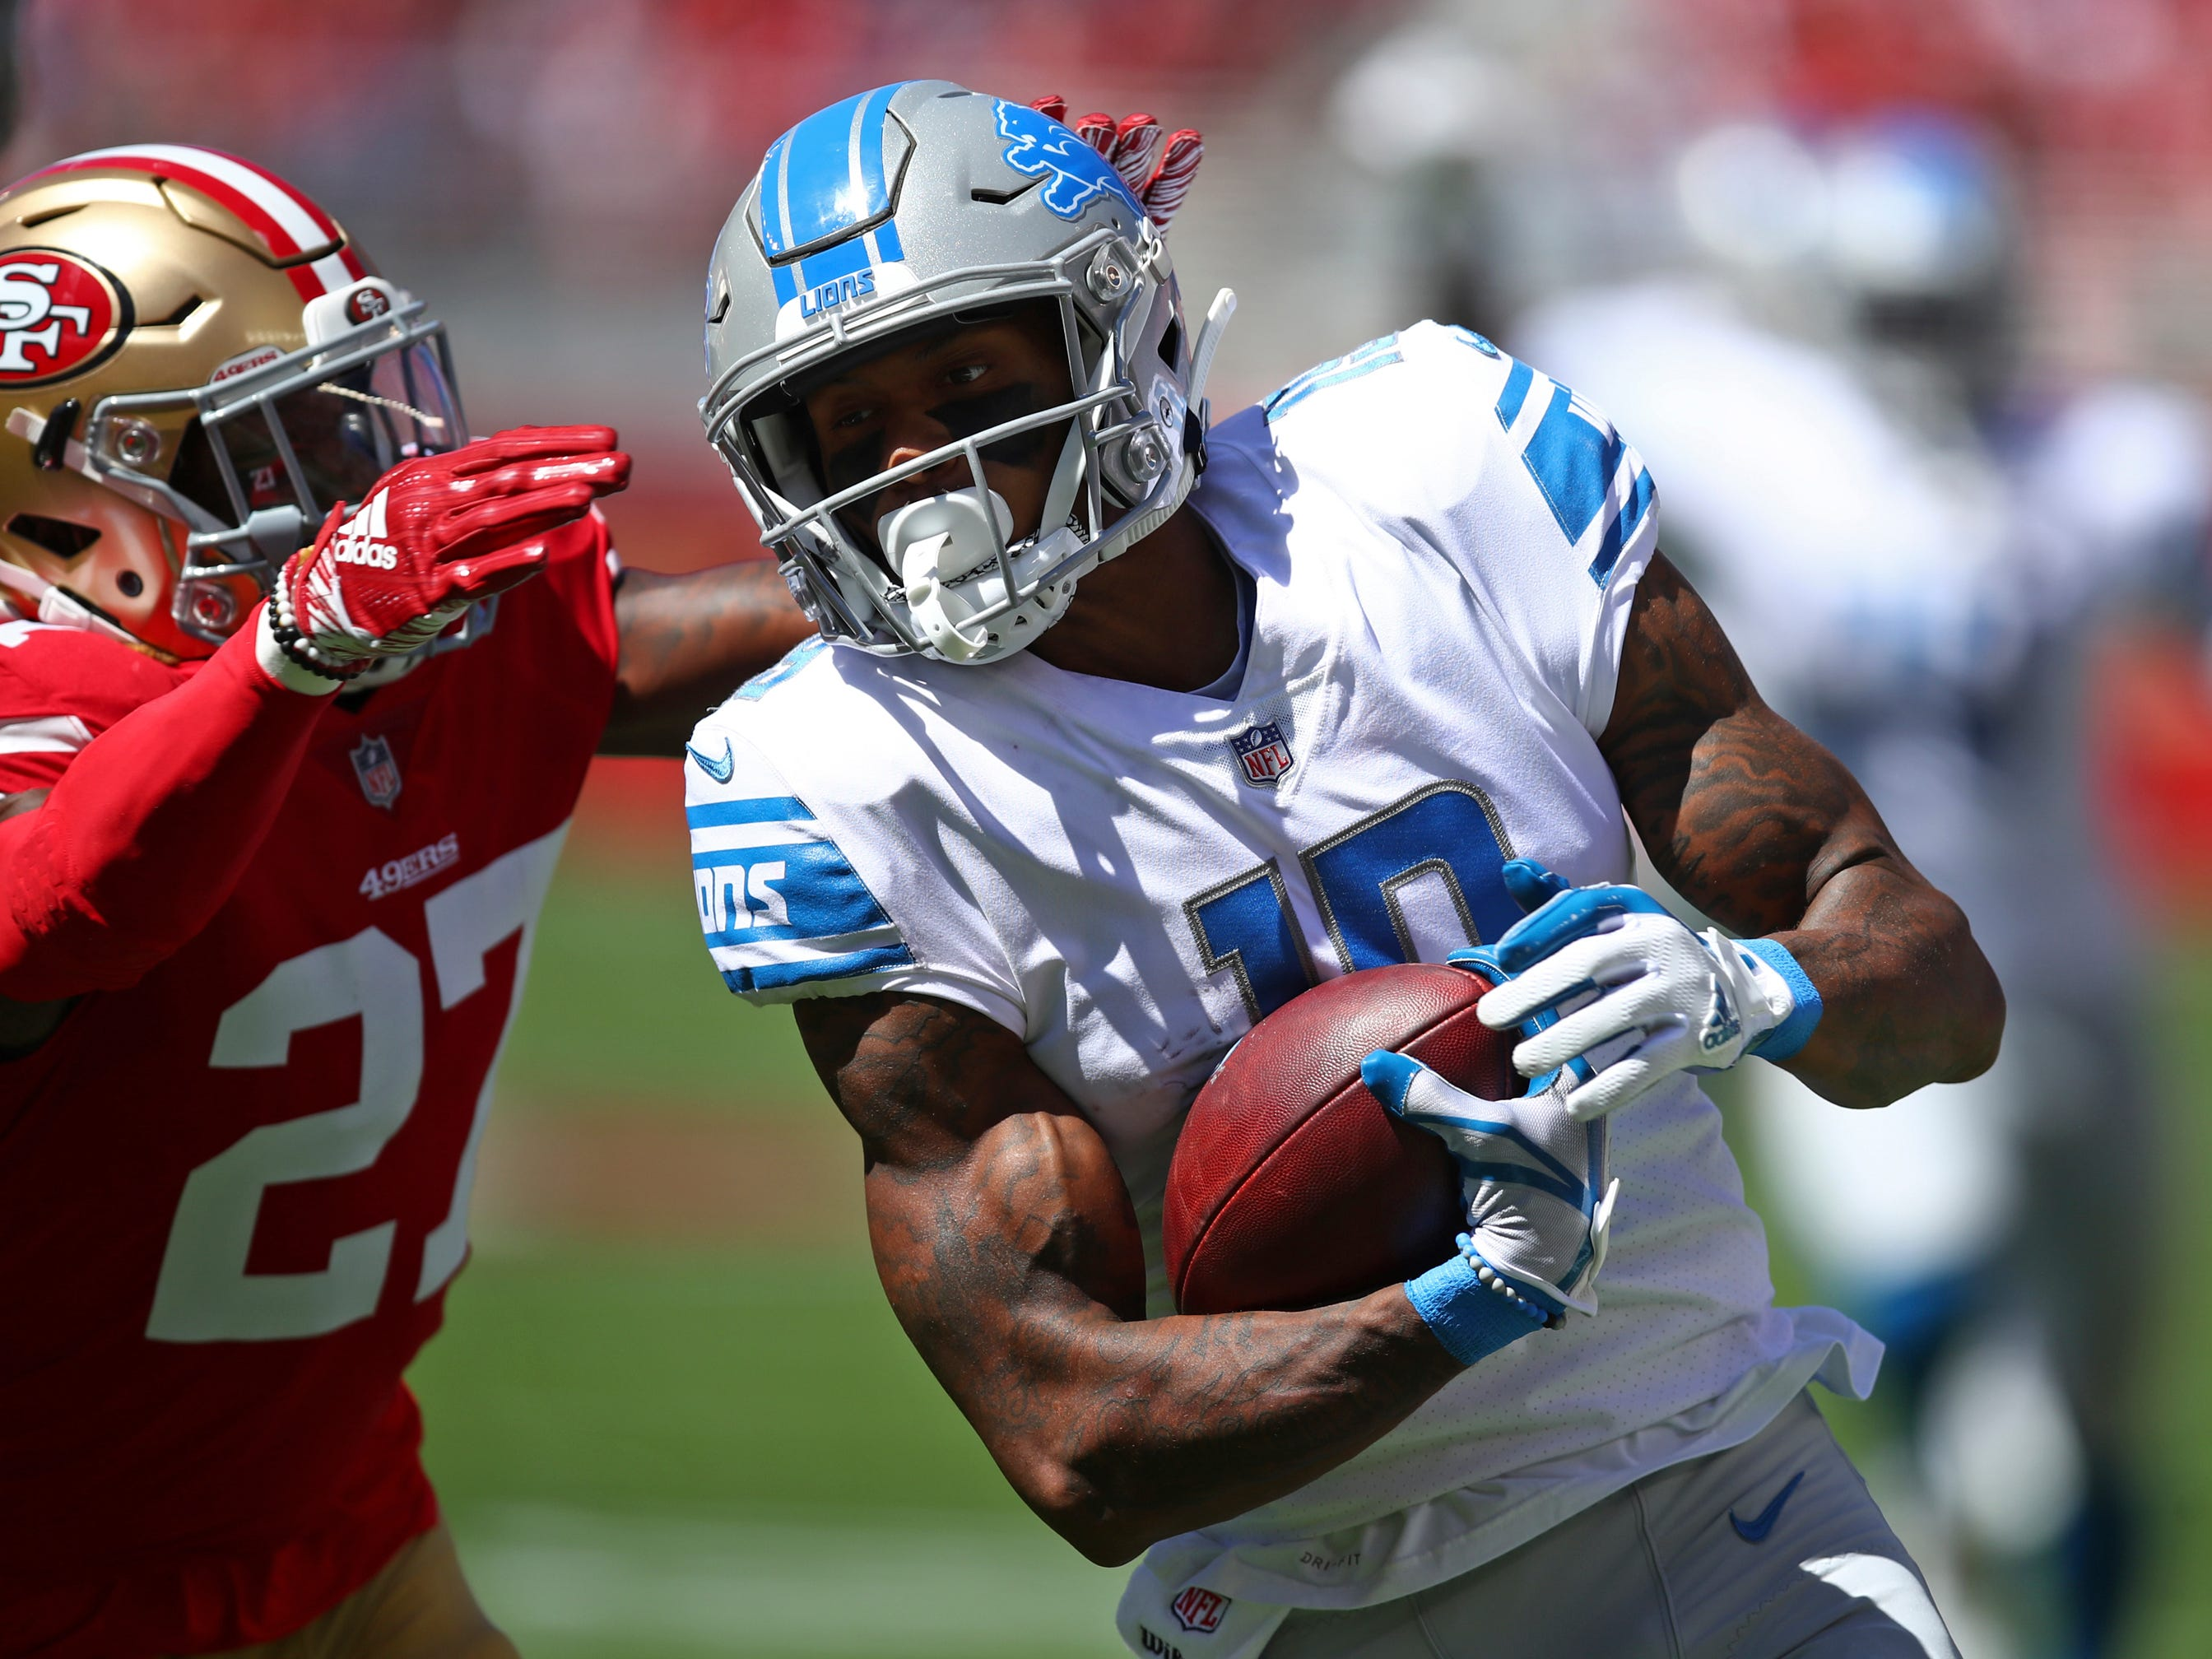 Lions receiver Kenny Golladay runs with the ball as 49ers defensive back Adrian Colbert pursues during the first half Sunday, Sept. 16, 2018, in Santa Clara, Calif.